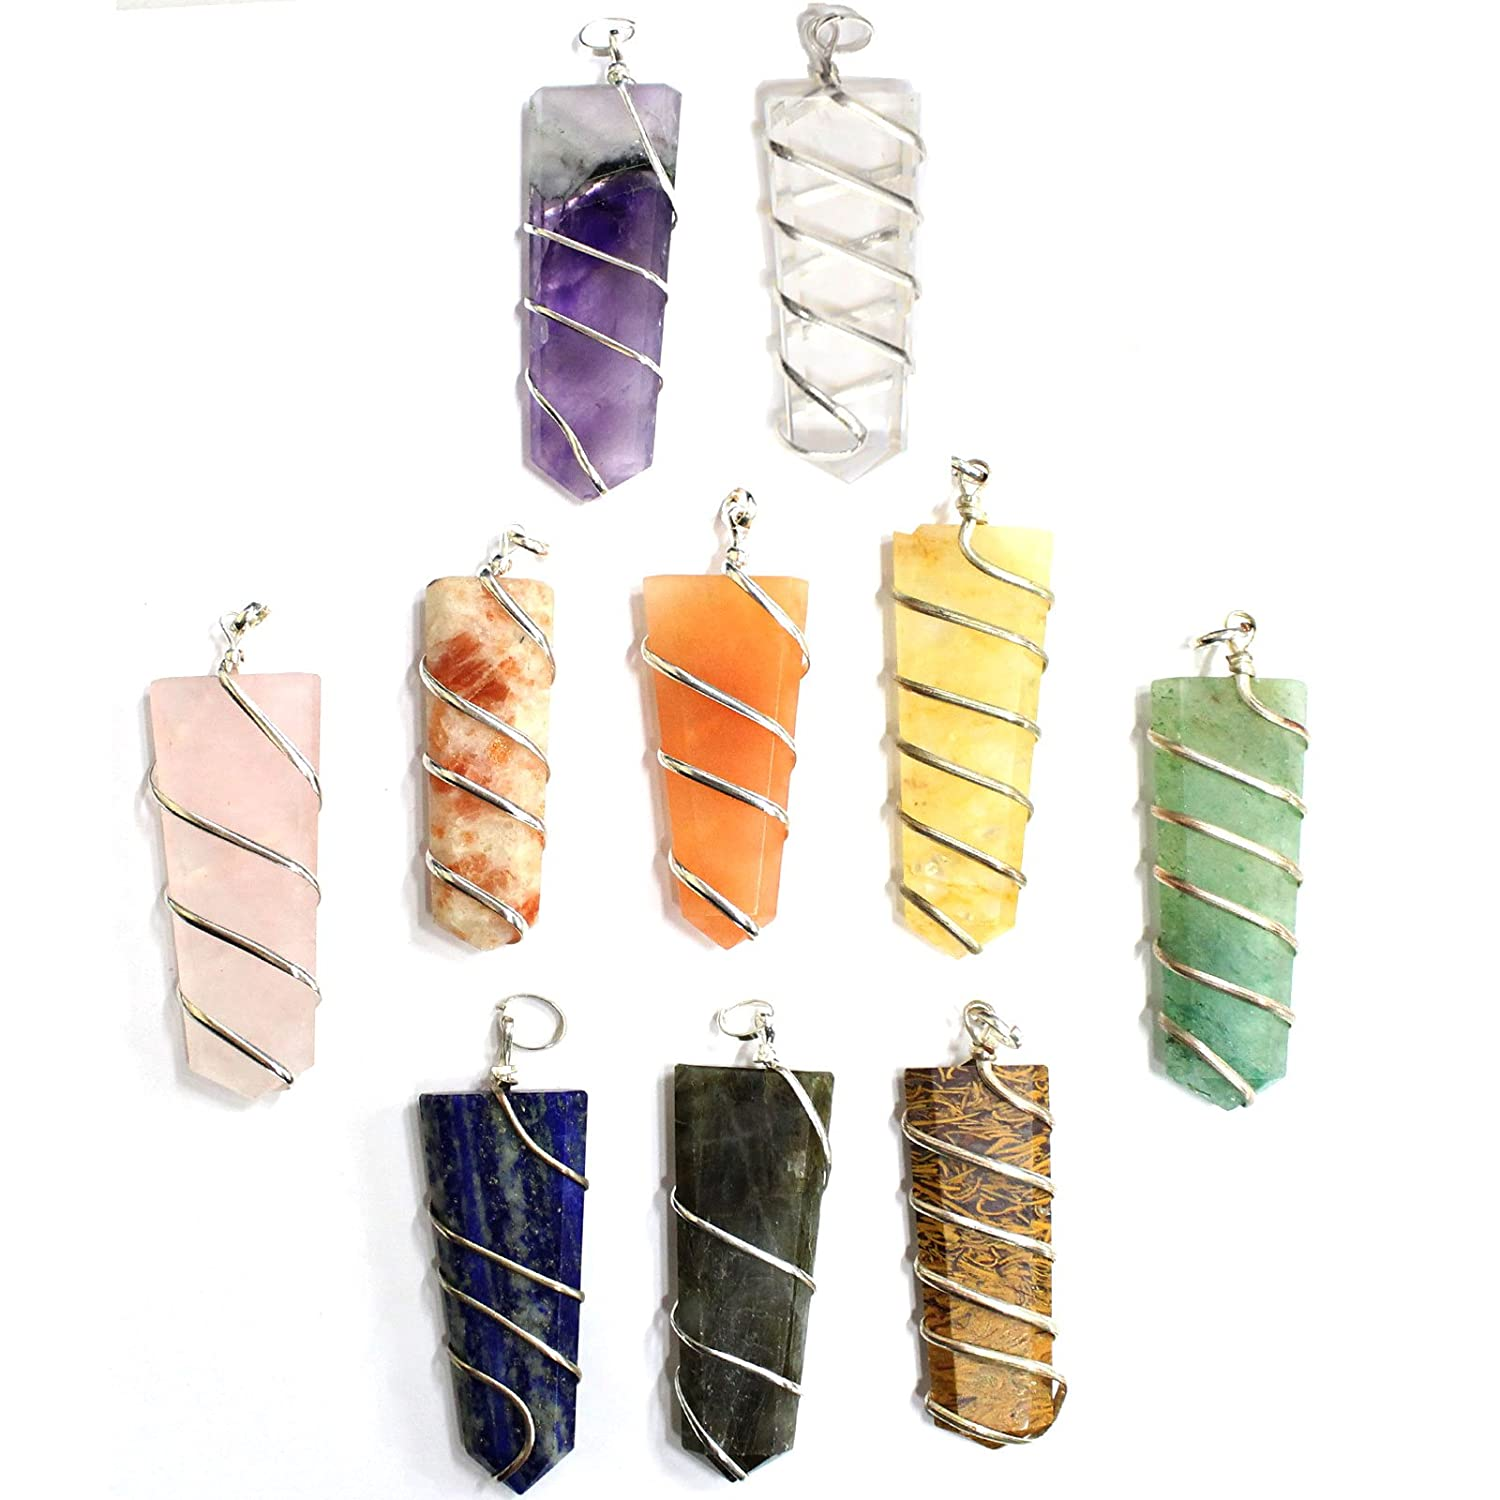 AM16B1 Rp COA Set of 10 Silver Plated Spiral Gemstone Pendants Silver Plated Bail